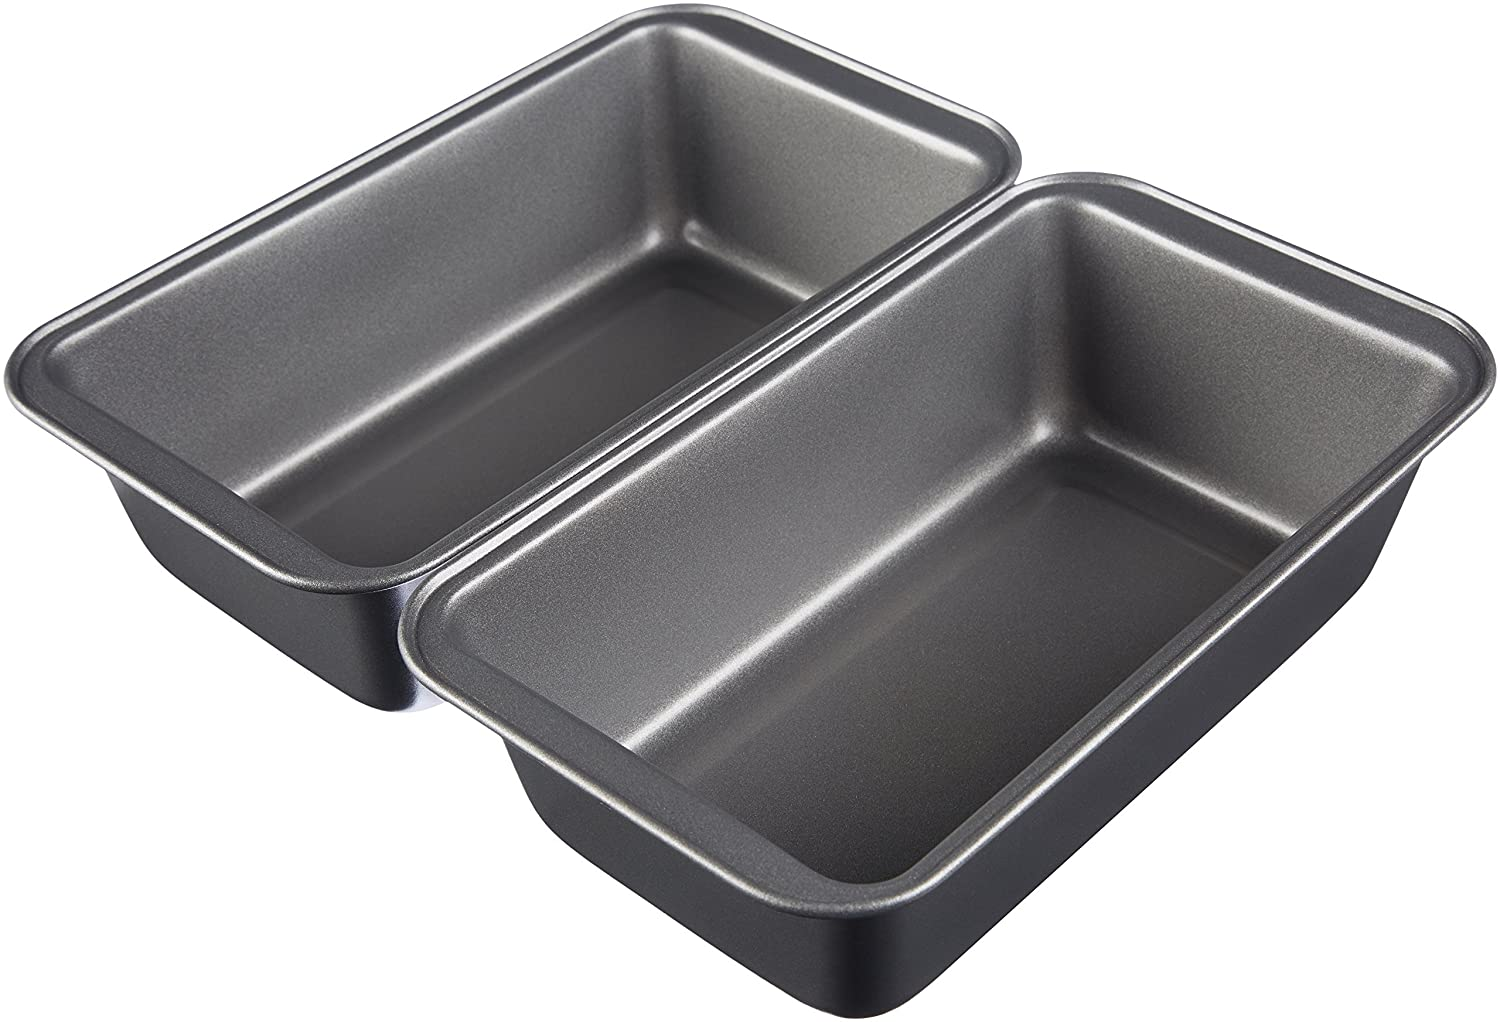 AmazonBasics Carbon Steel Bread Pan - 2-Pack 78262